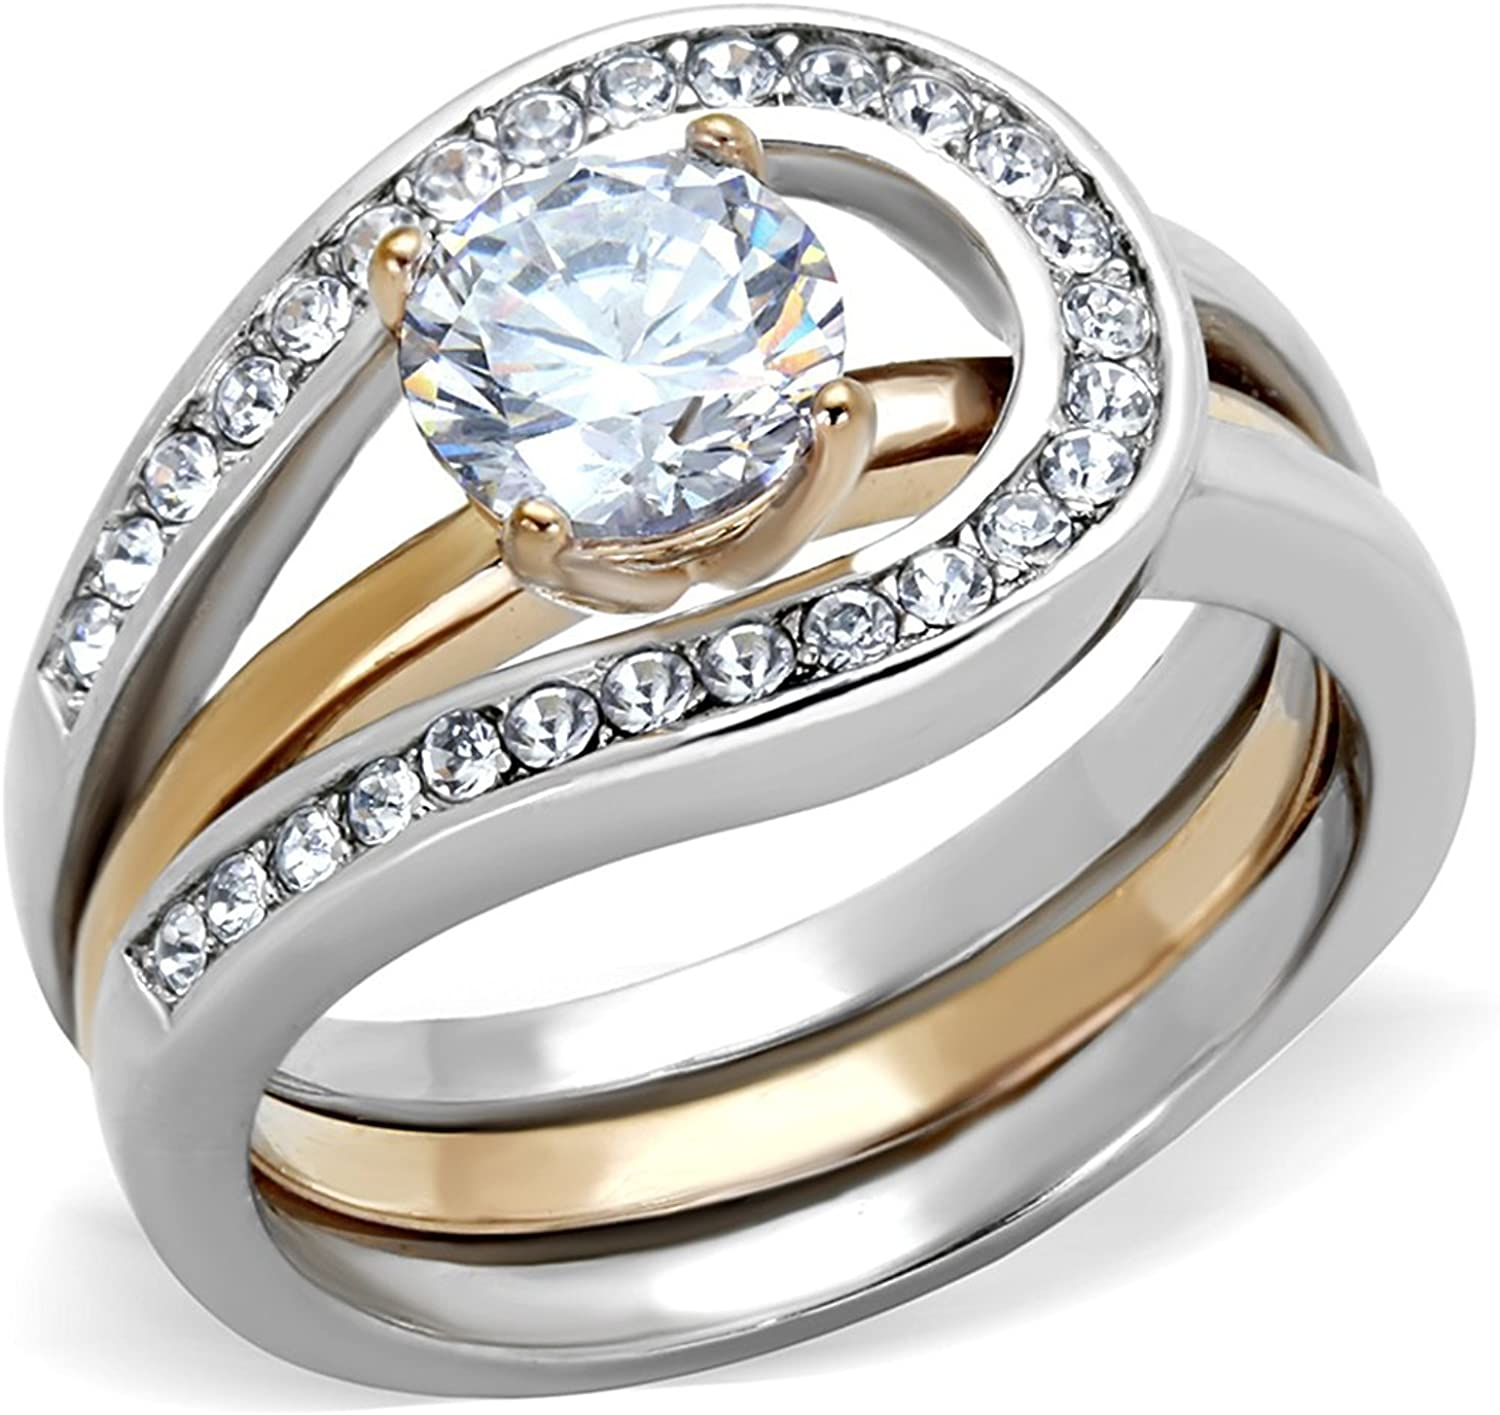 Round Cut Two Toned Stainless Steel 2 Piece Wedding Ring Set Women/'s Sz 5-10